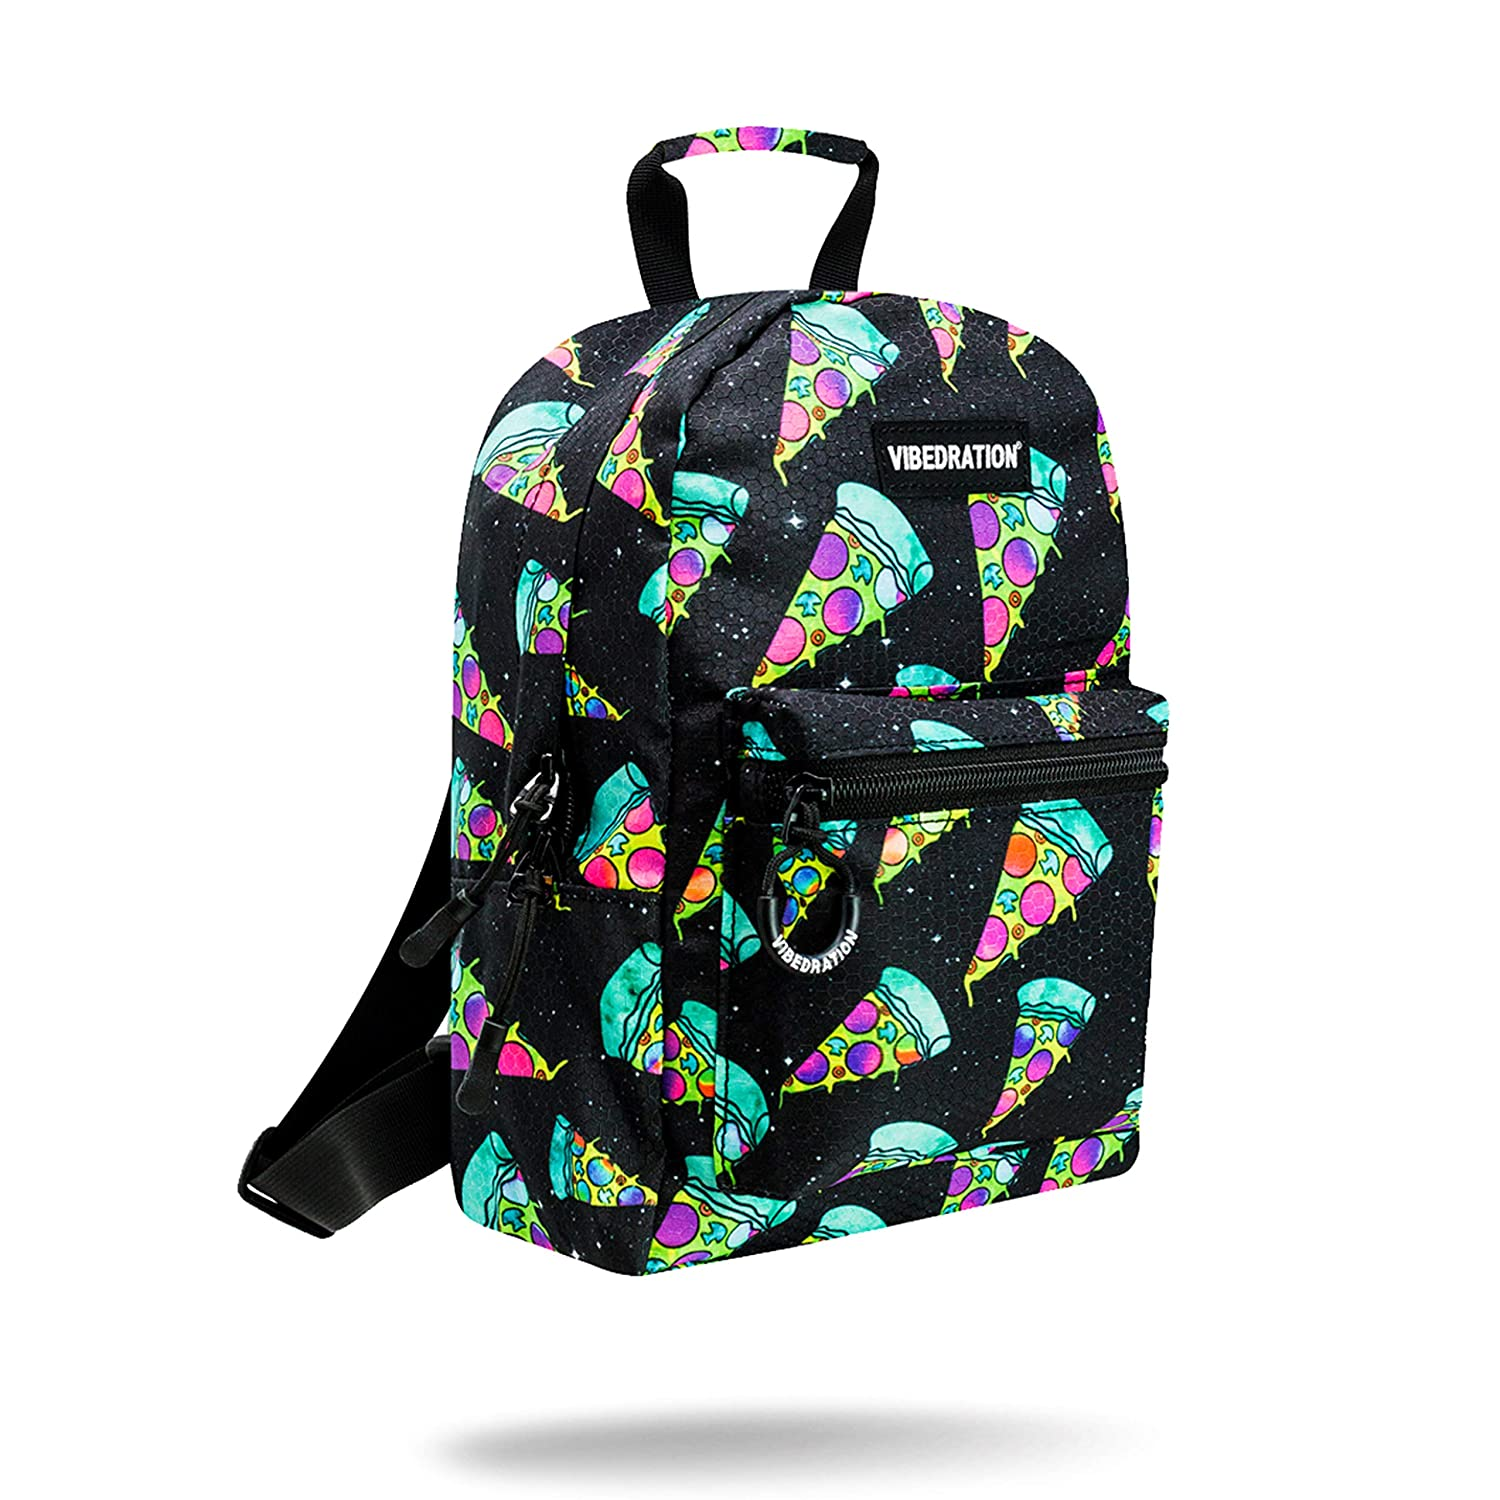 eef47bd40df1 Vibedration Mini Backpack | Casual Lightweight Daypack Purse for Women,  Girls, Boys, Men | Festival Fashion, Rave & Travel Accessories (Cosmic  Pizza)